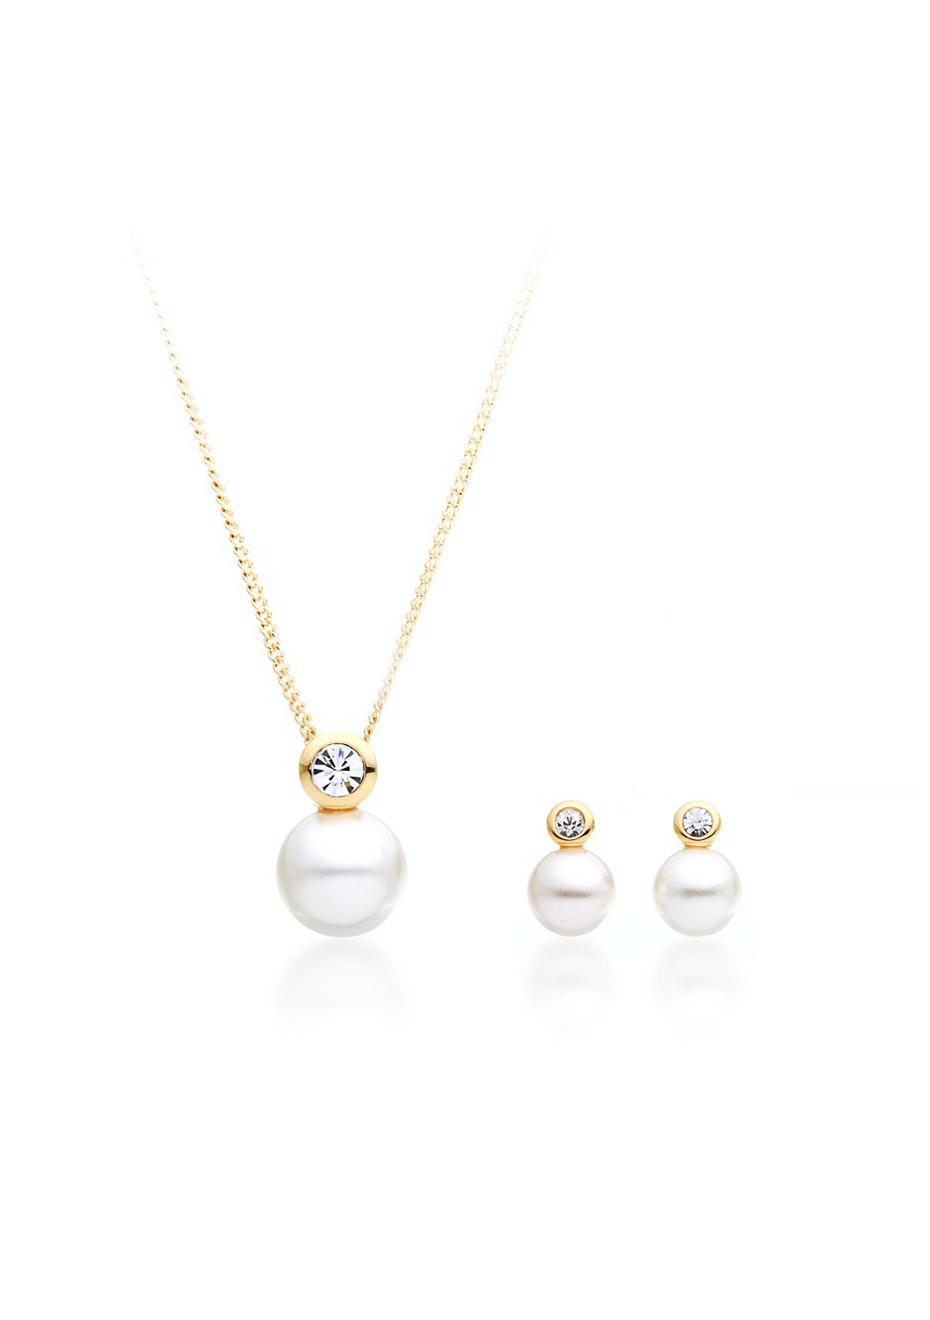 Matching Pearl Set Embellished with Crystals from Swarovski